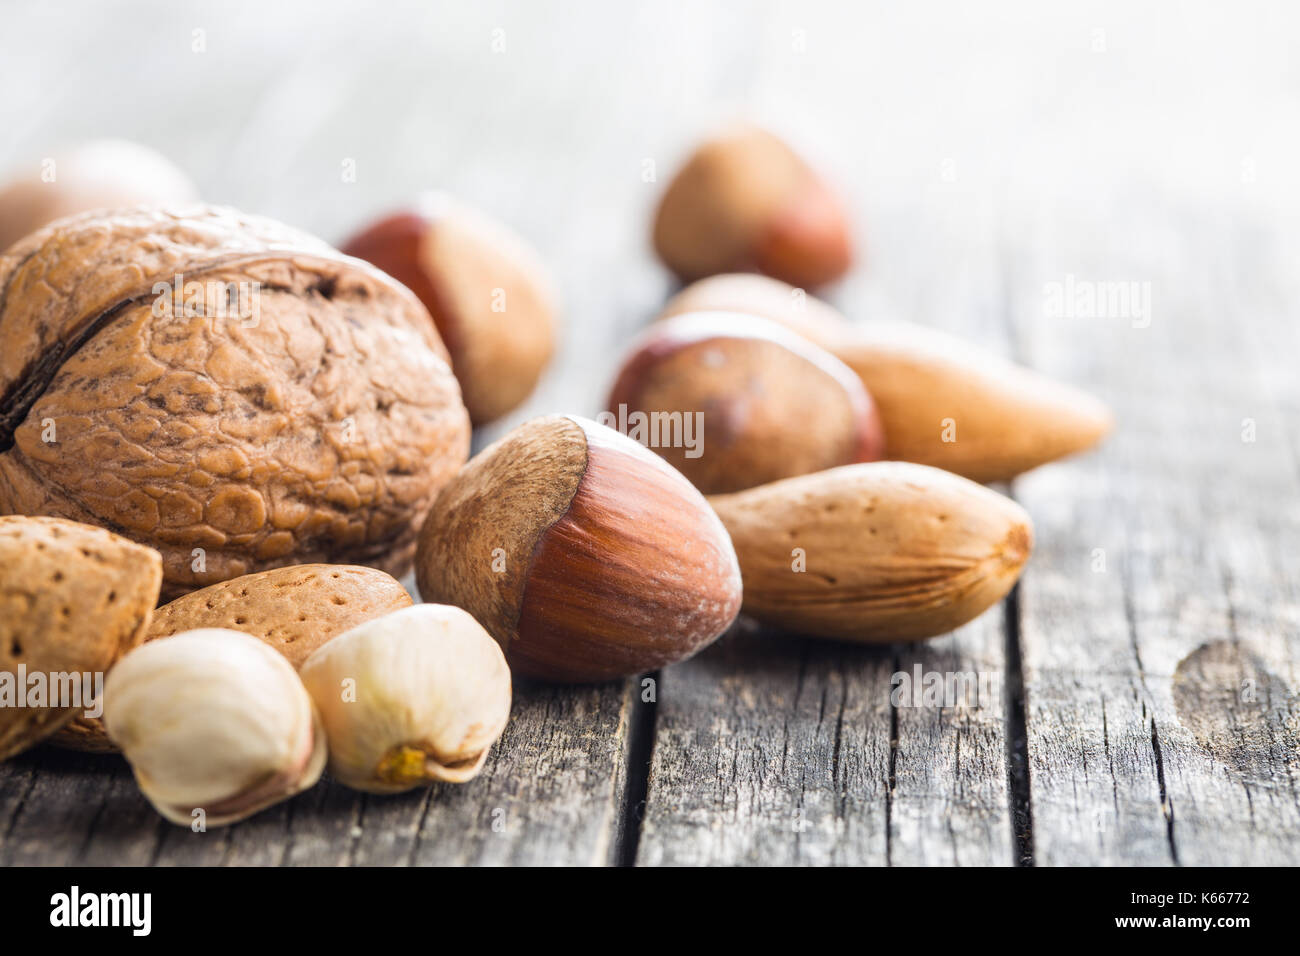 Different types of nuts in the nutshell. Hazelnuts, walnuts, almonds, pecan nuts and pistachio nuts on old wooden - Stock Image